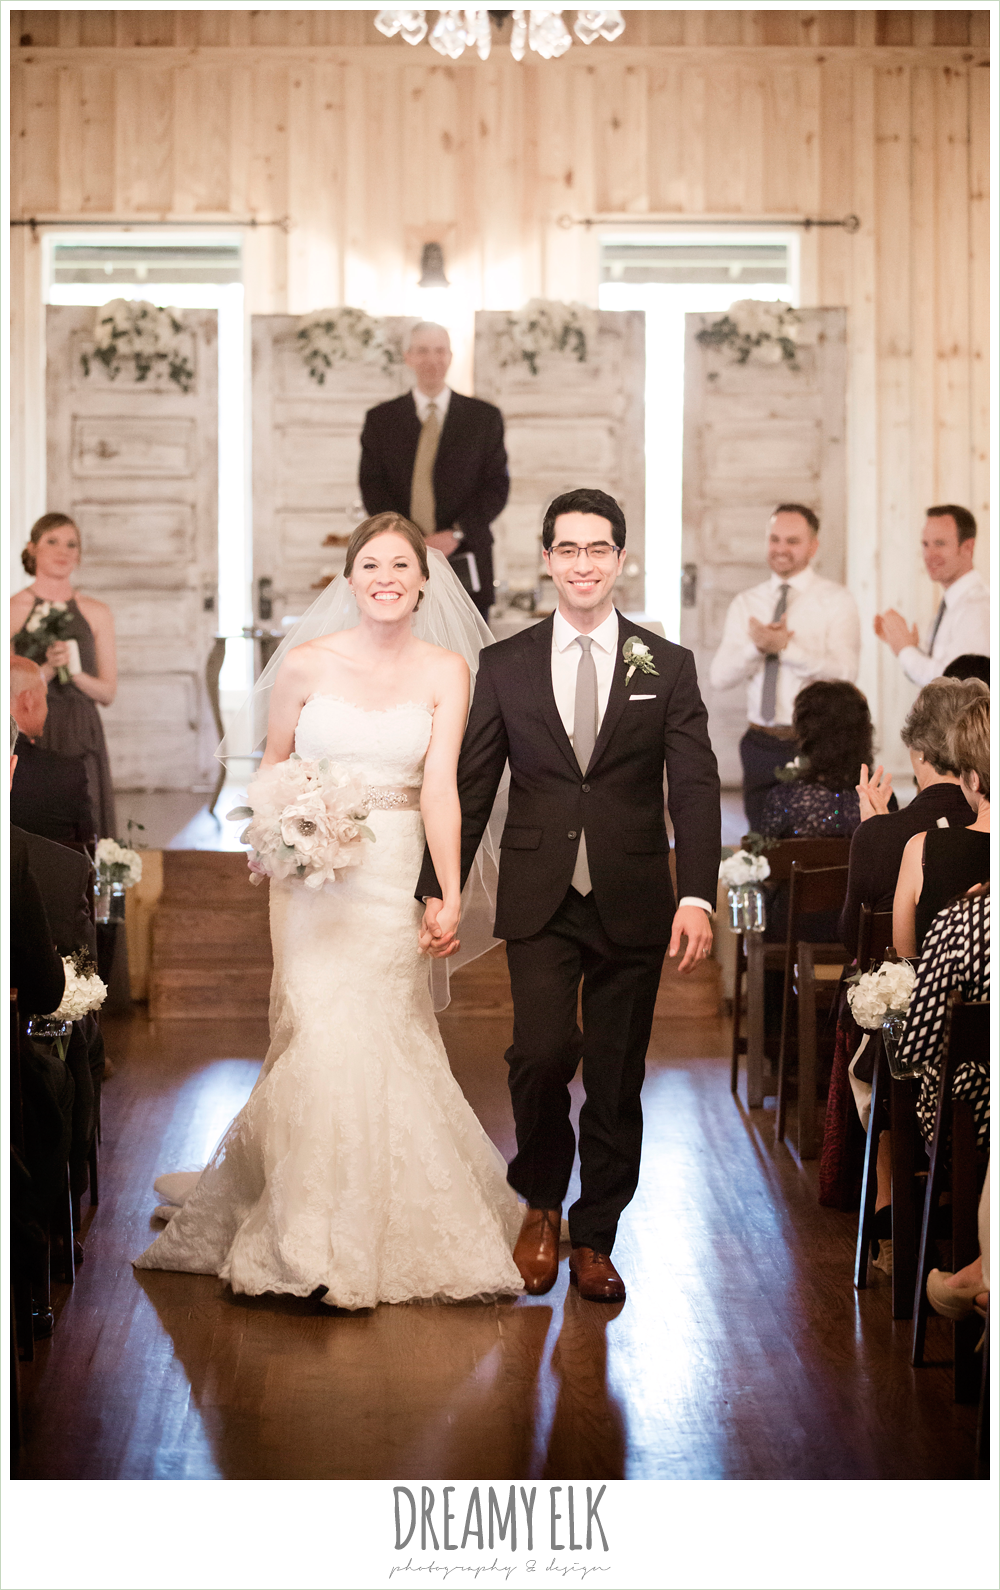 bride and groom walking down the aisle, navy gray and white wedding, spring rainy wedding at crystal springs, houston, texas {dreamy elk photography and design}